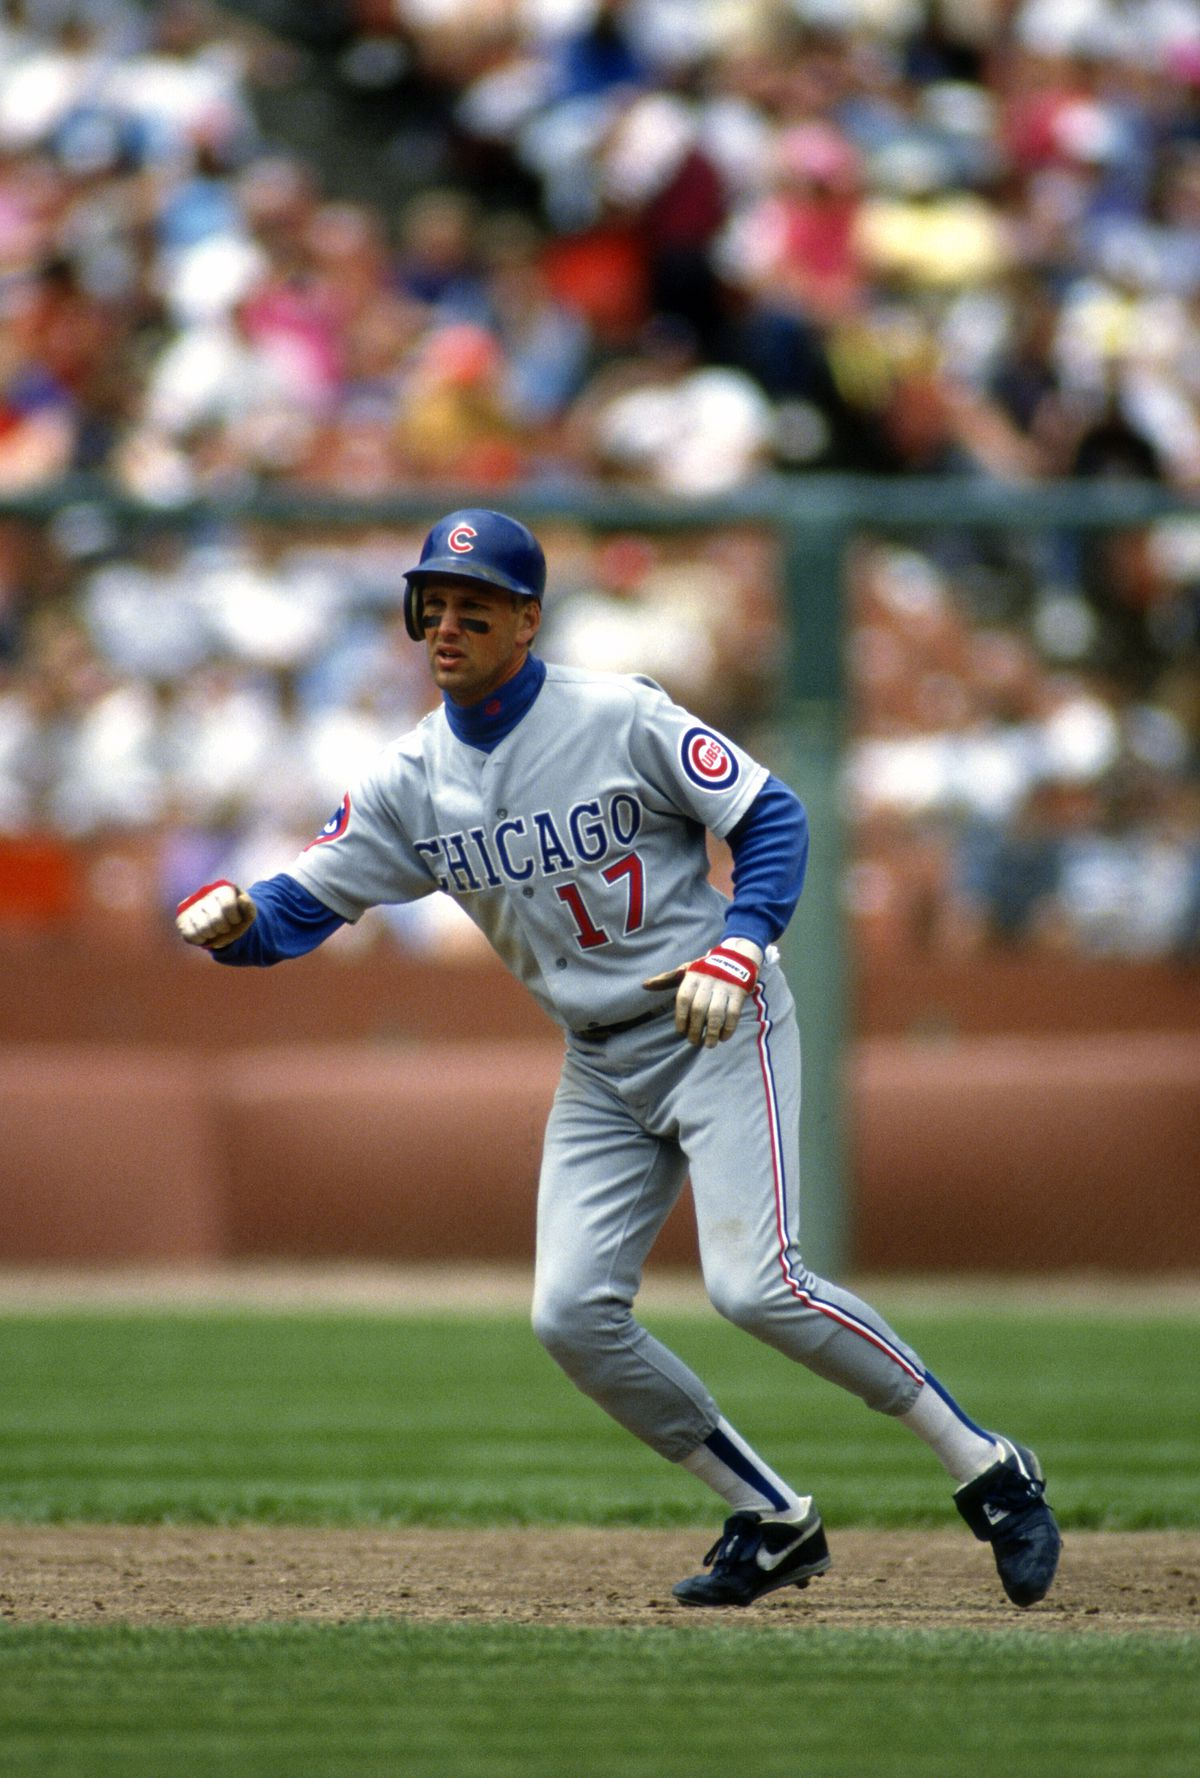 mark grace 1991 (Focus on Sport/Getty Images)